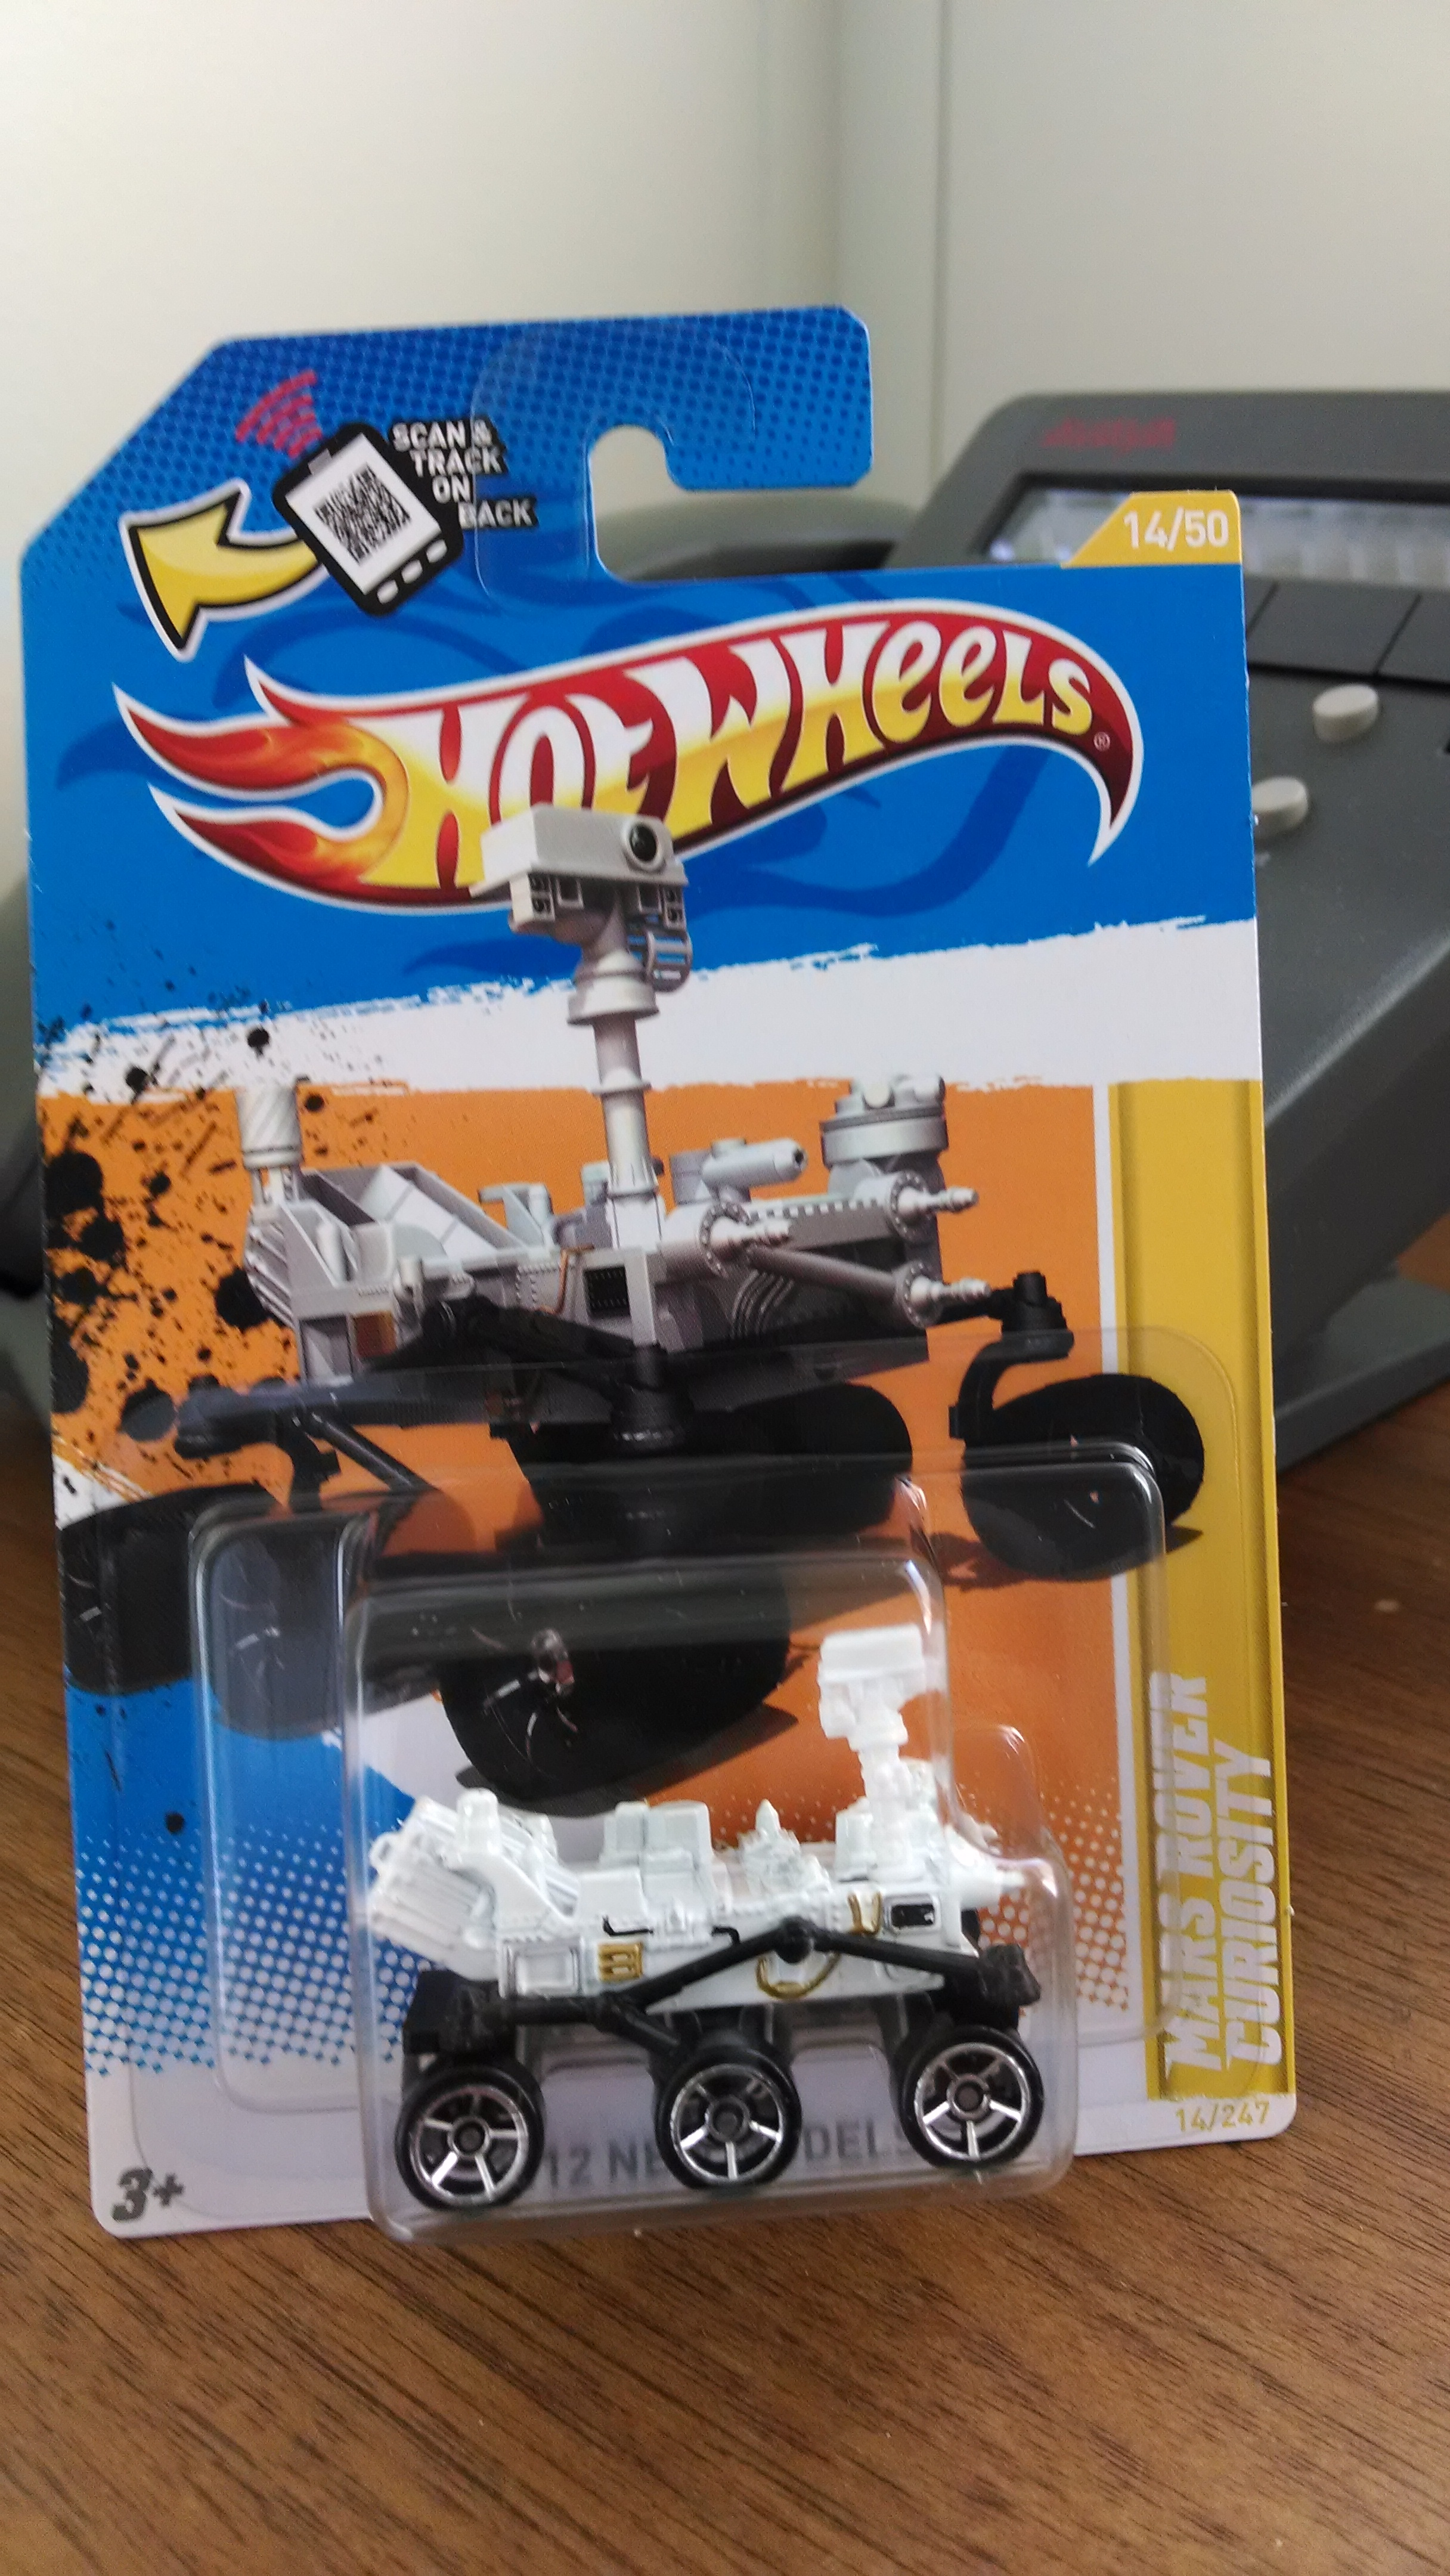 Yes, that is a Hot Wheels Mars Rover